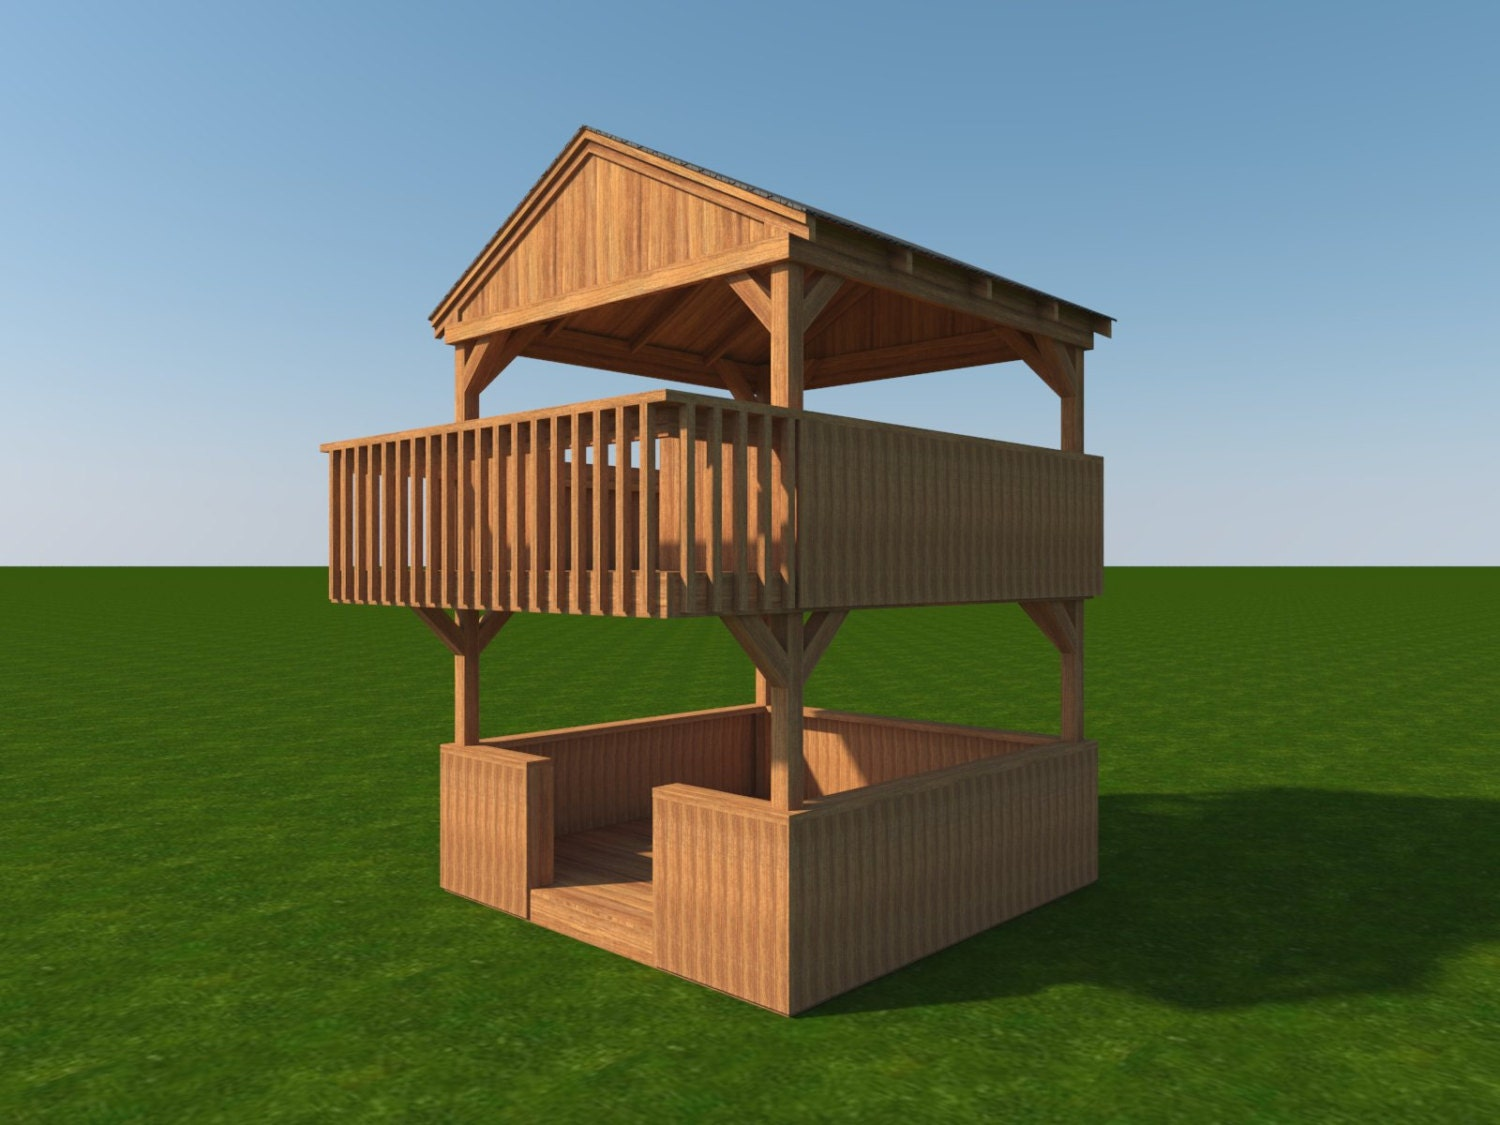 Do It Yourself Home Design: Build Your Own 2 Story Playhouse Fort DIY Plans Fun To Build